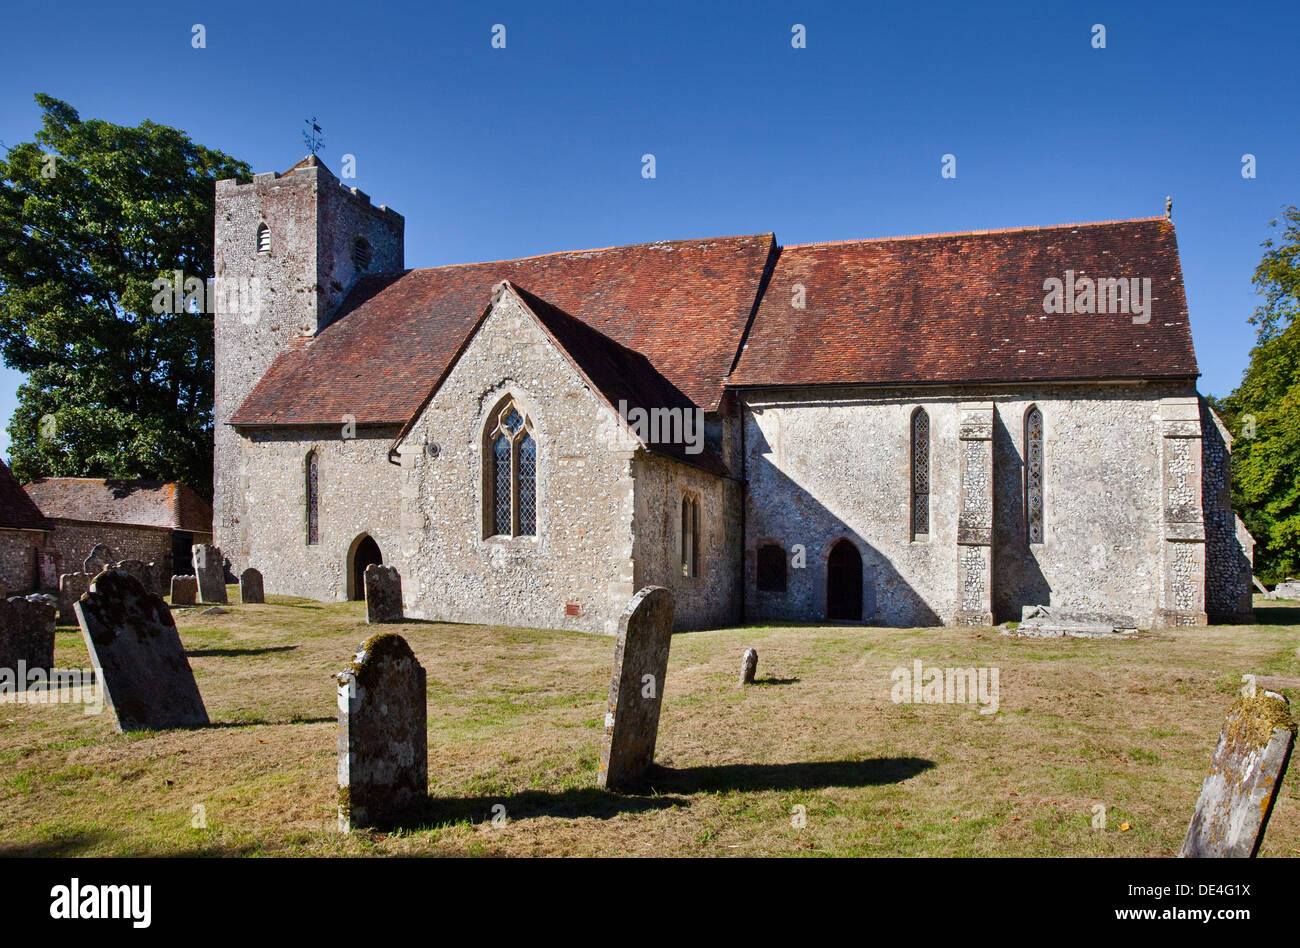 St Michael and All Angels Church, Chalton, Hampshire, England Stock Photo